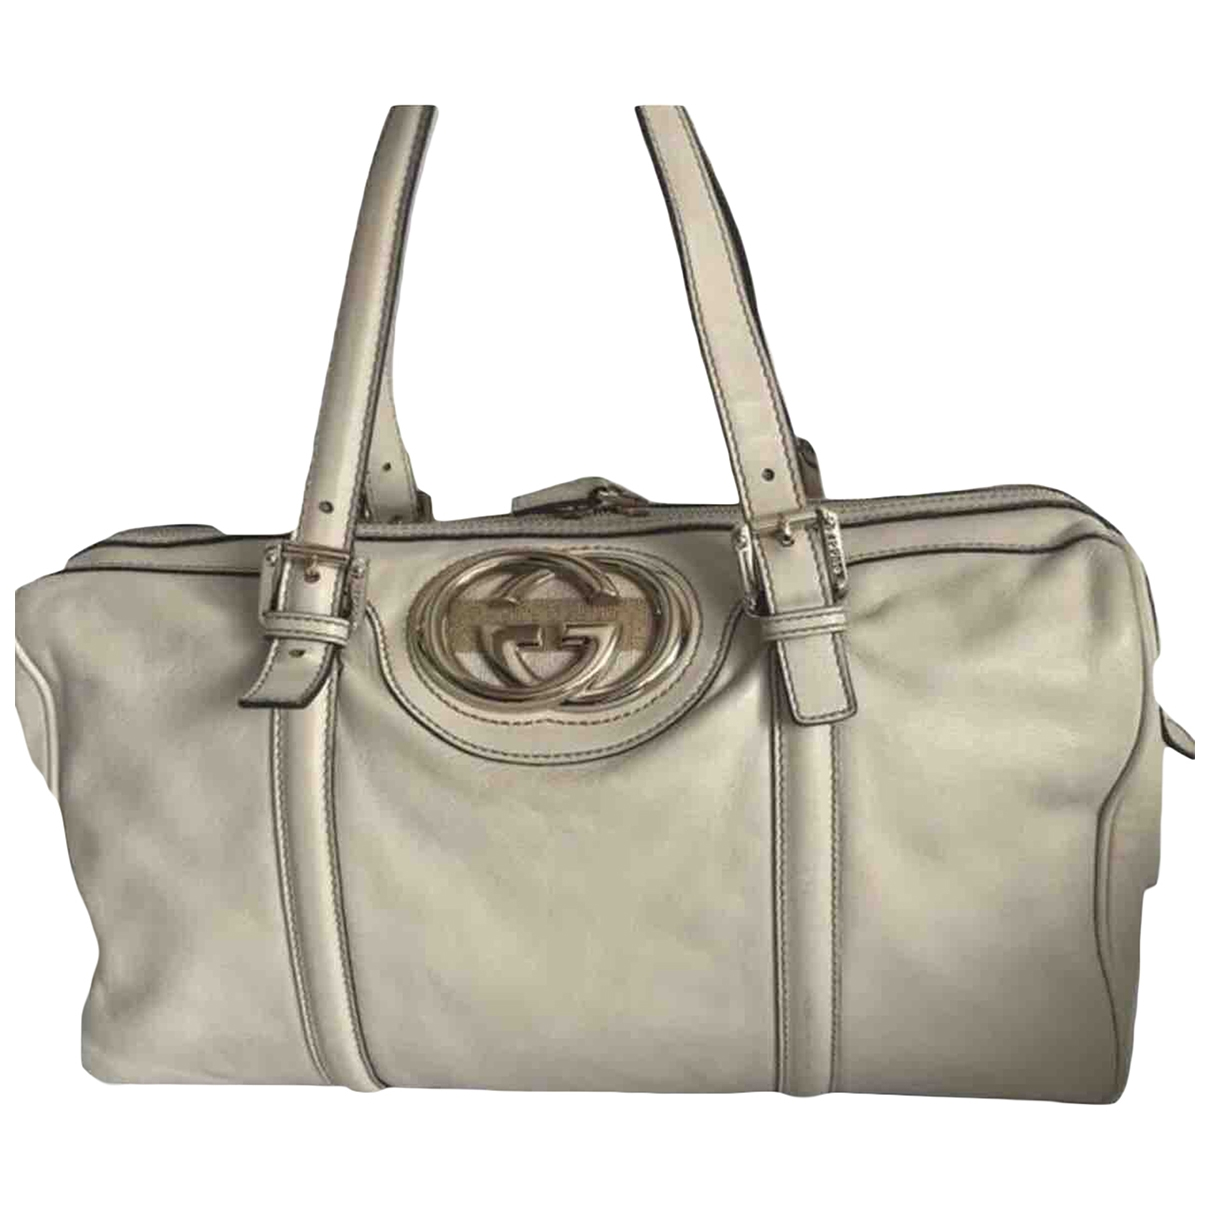 Gucci \N Ecru Leather handbag for Women \N